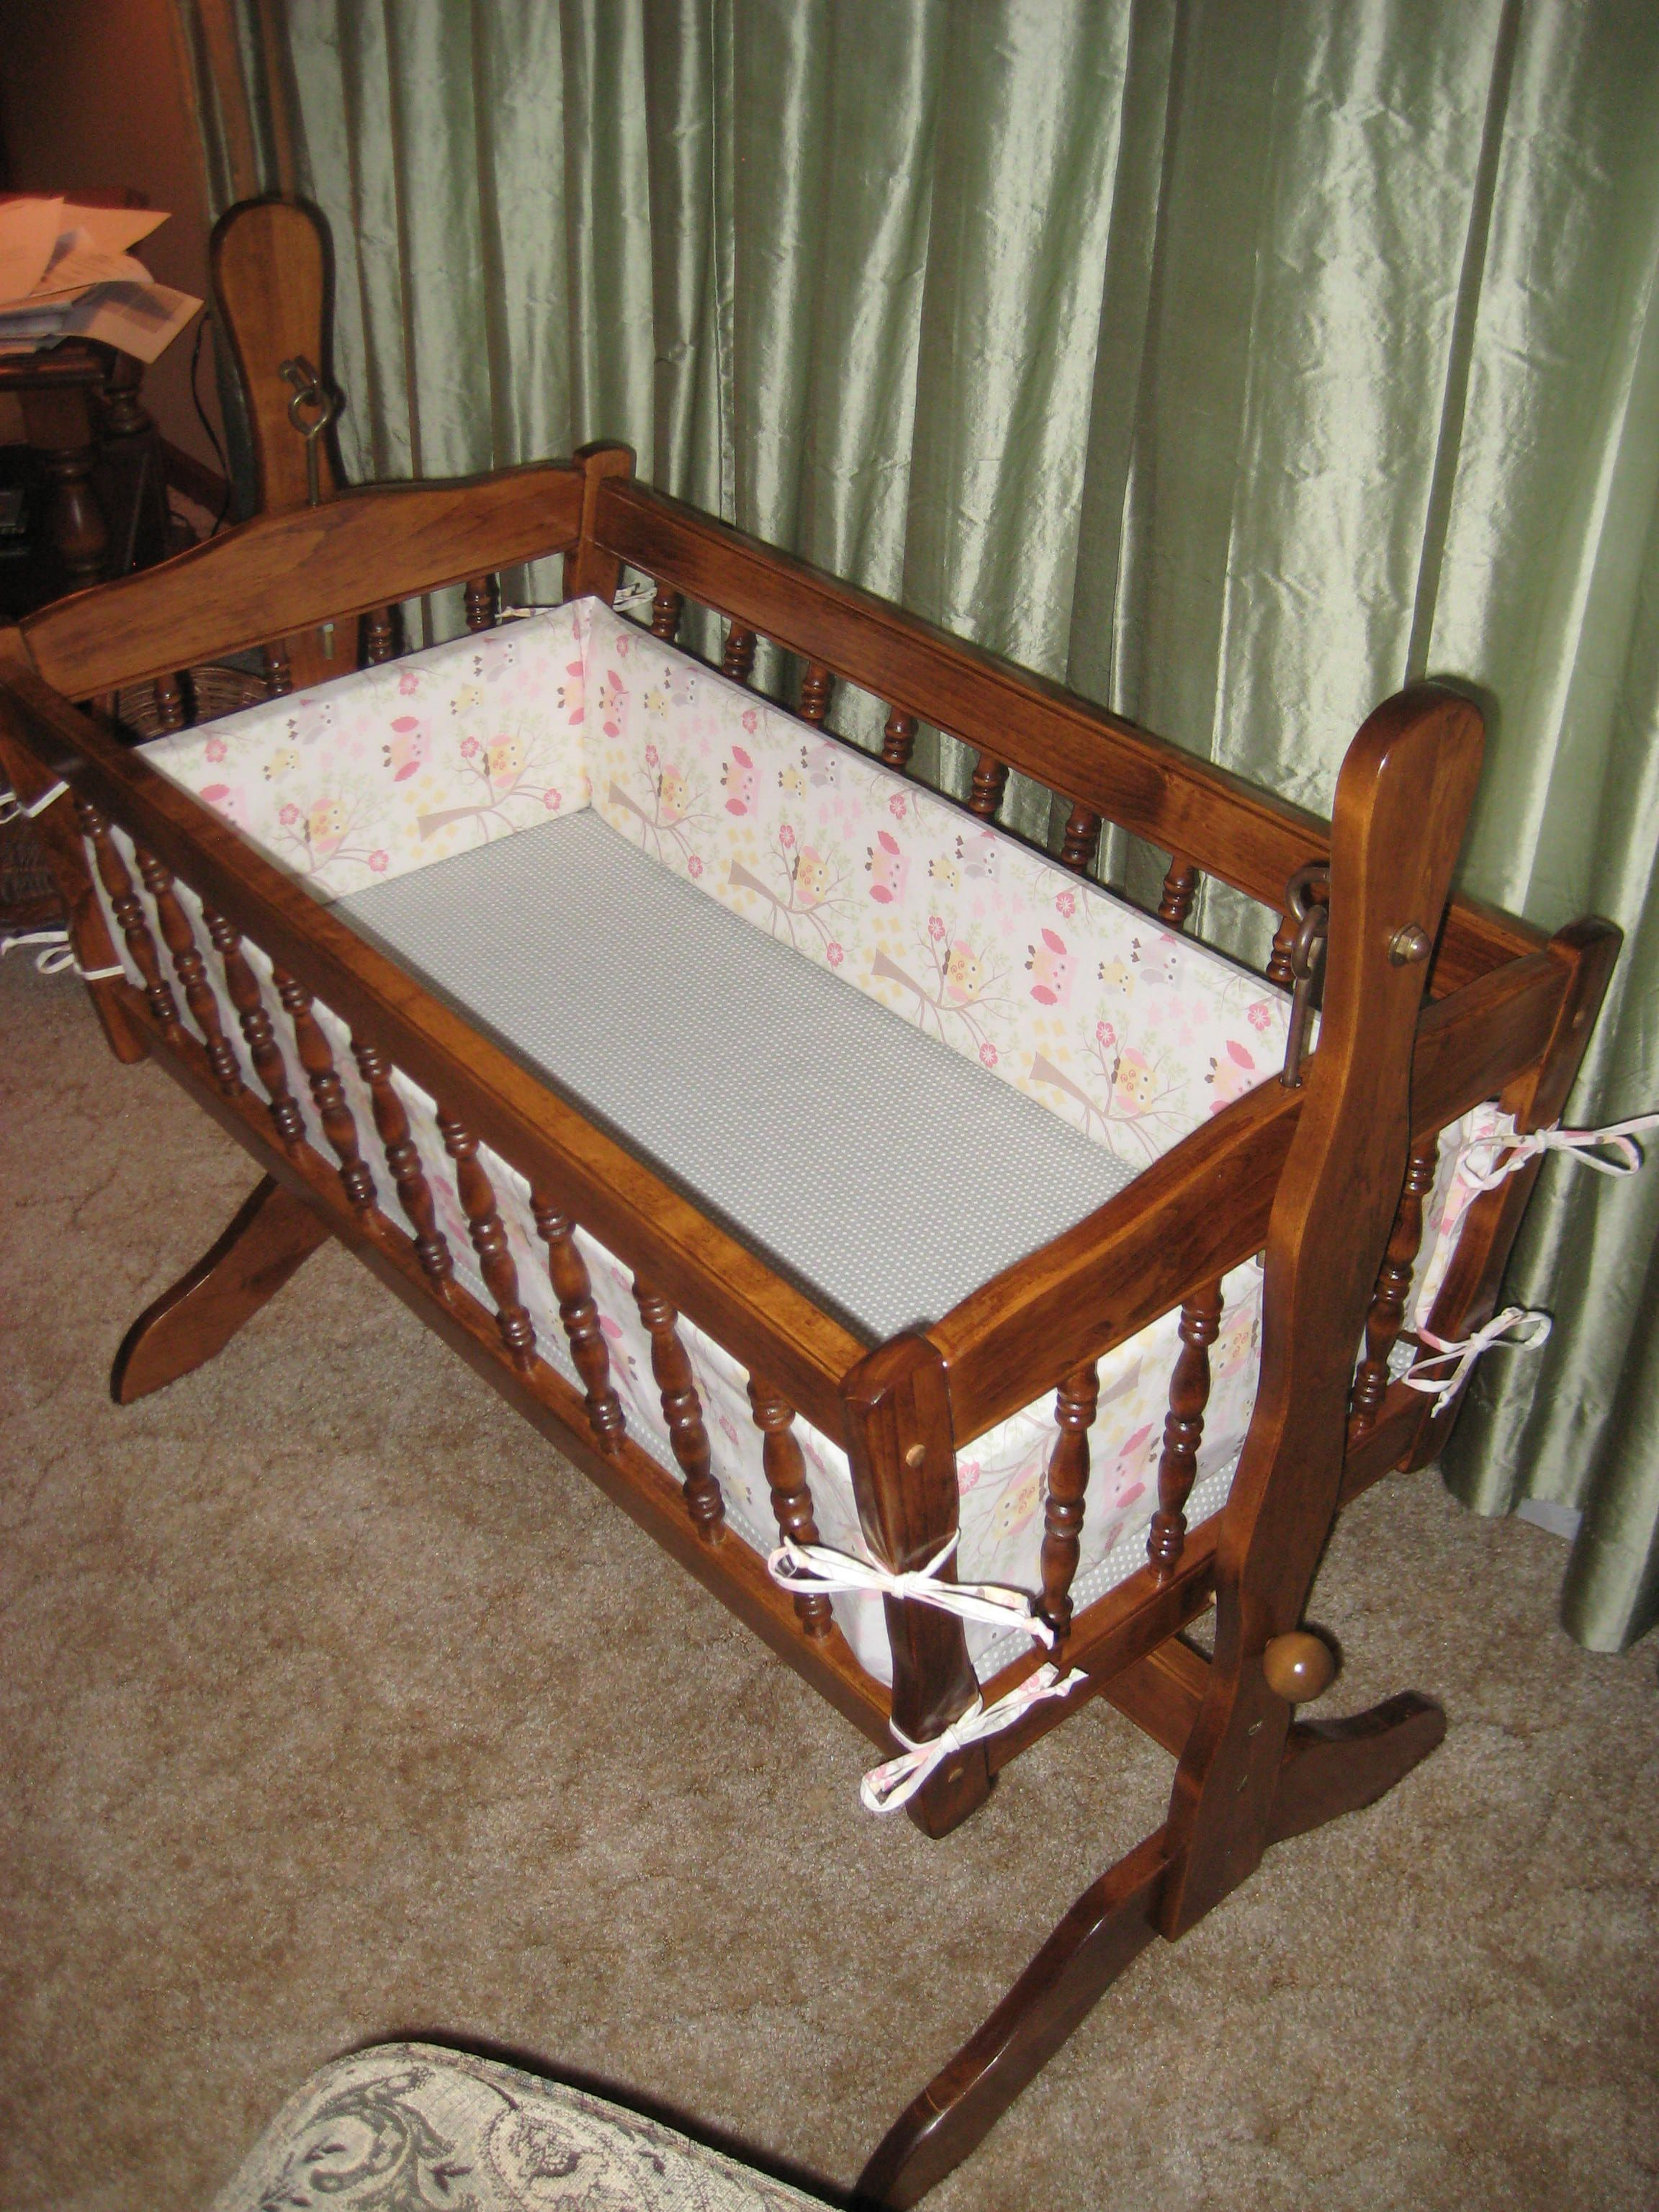 Baby Cradle Sheets Refinished 38 Year Old Cradle And Made New Sheets And Bumper